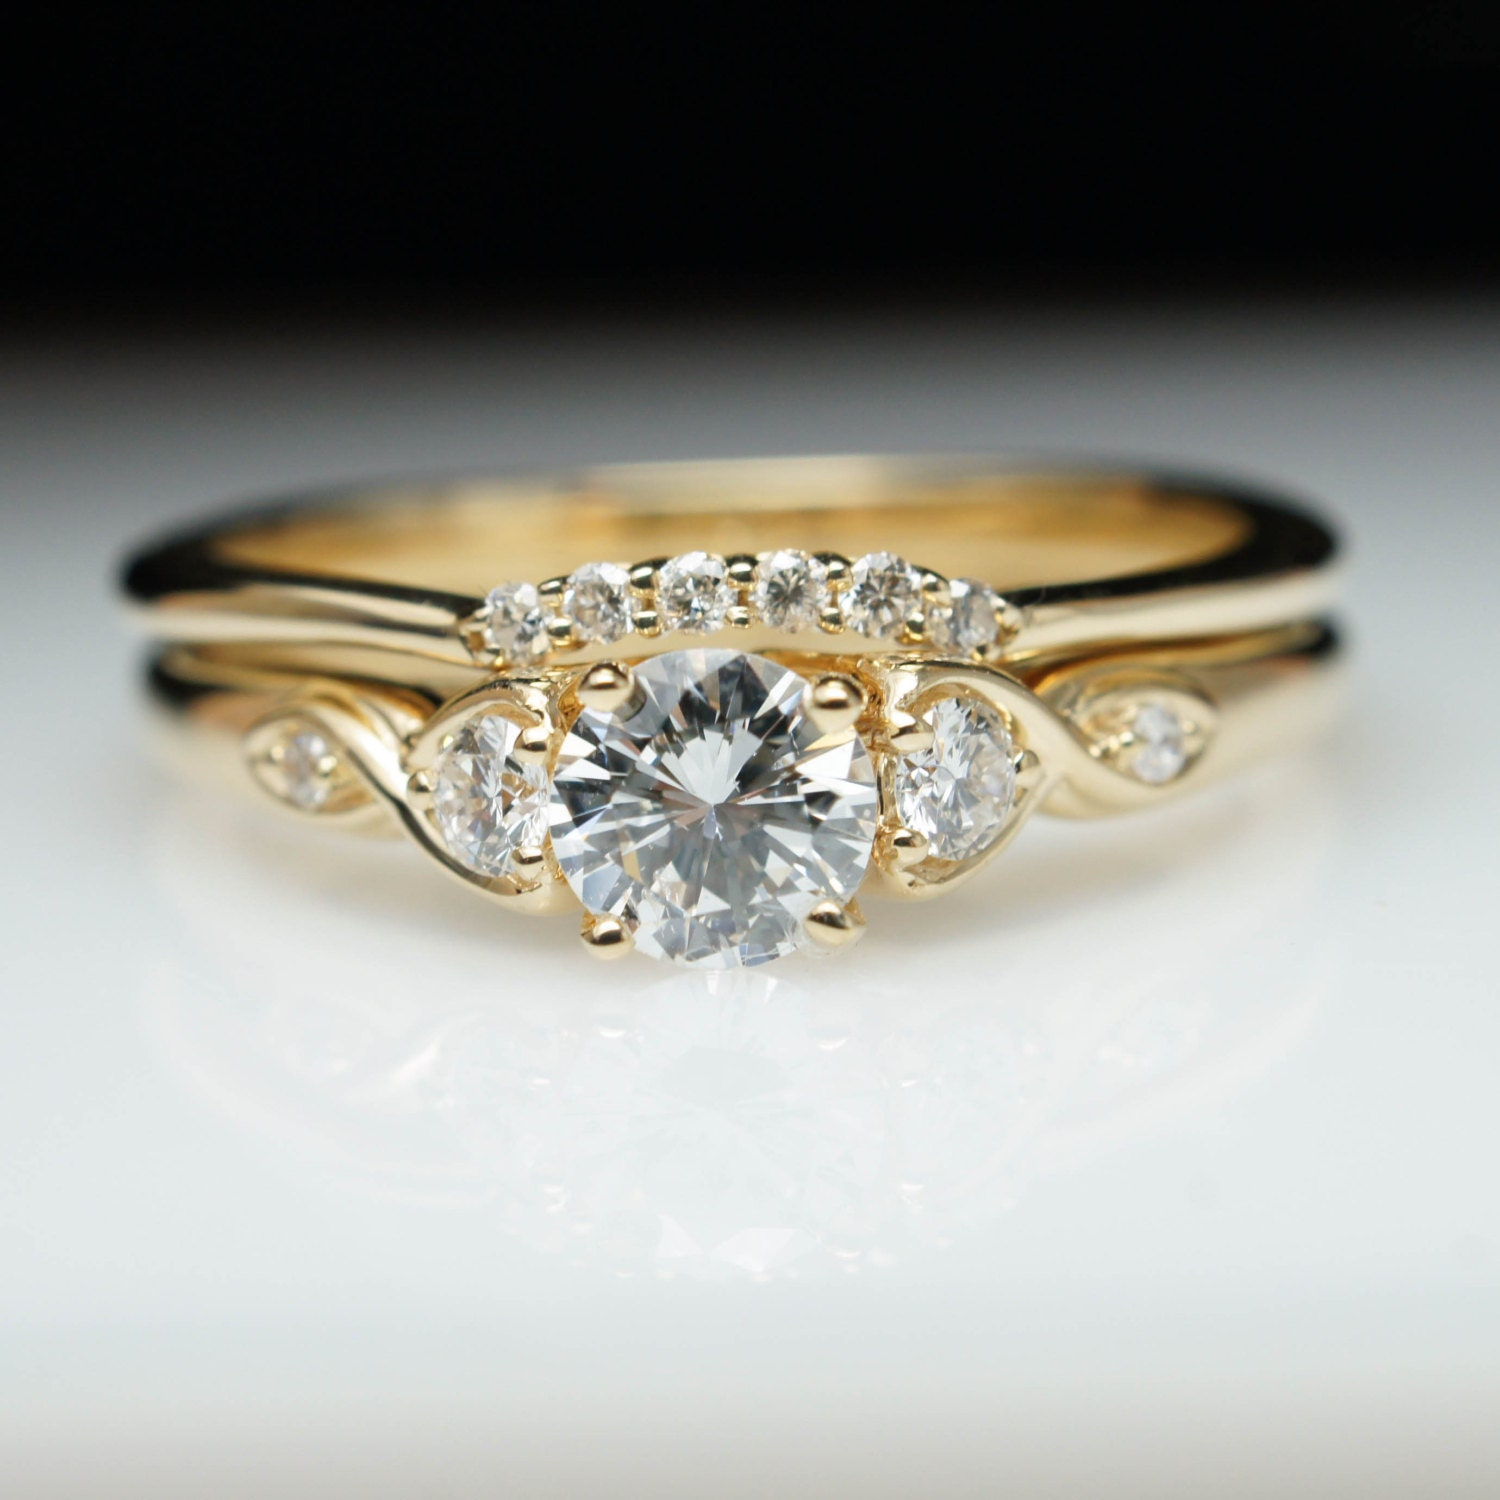 vintage antique style diamond engagement ring wedding band